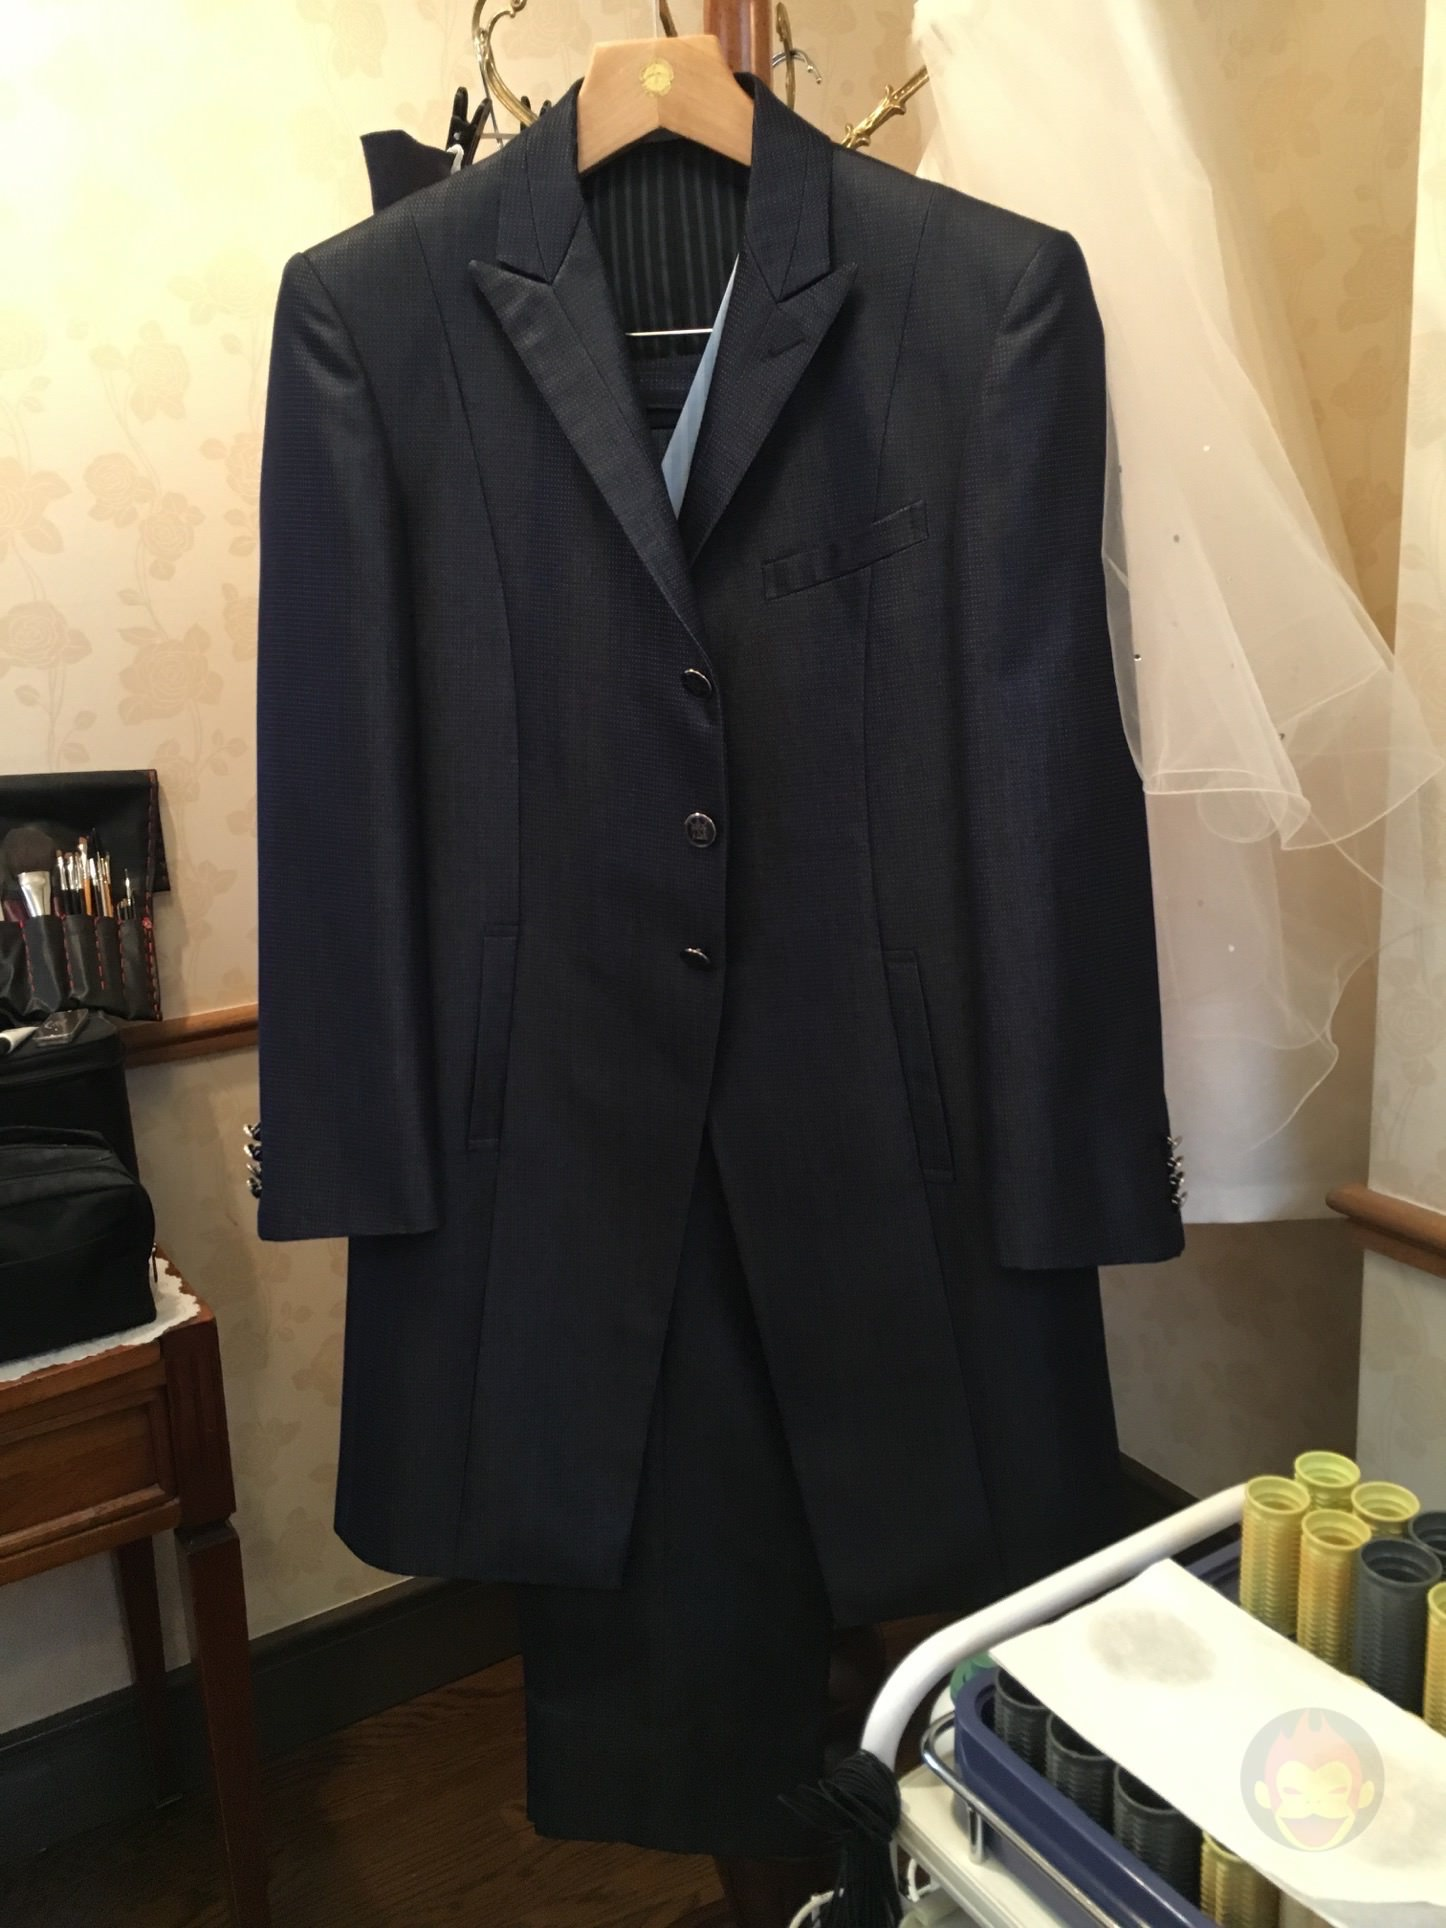 My Suit for Wedding